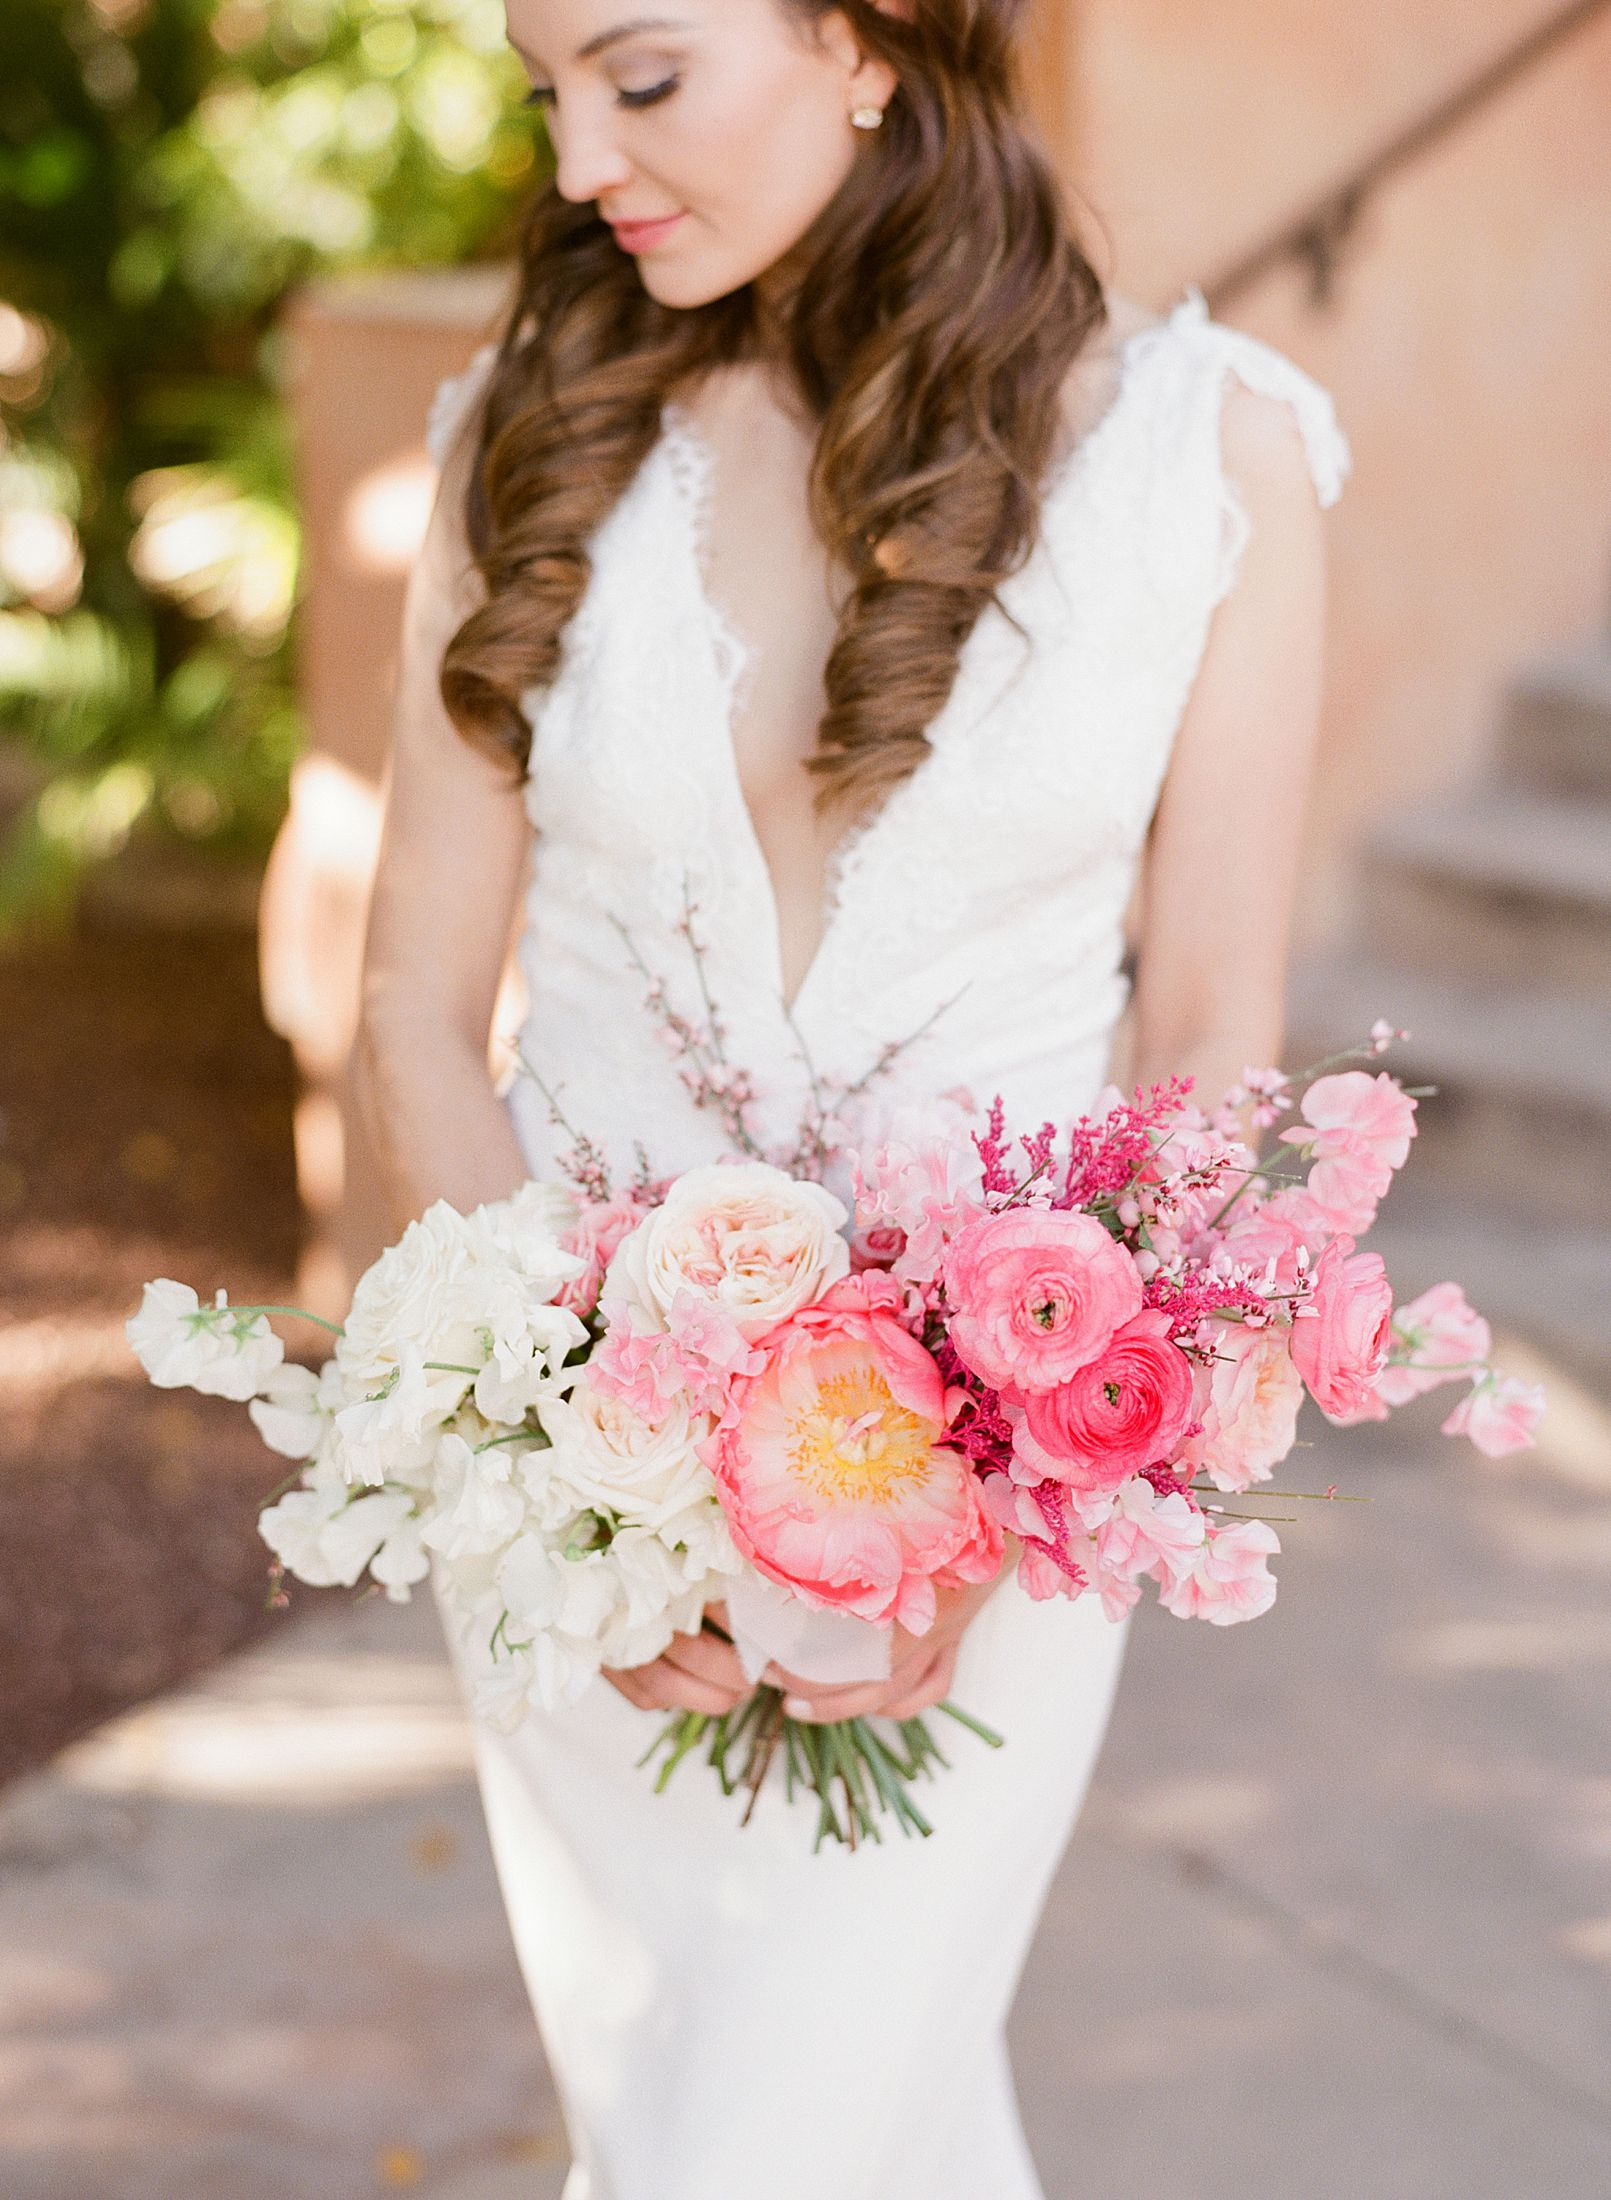 Pink Ombre Wedding Inspiration on Style Me Pretty - Royal Palms Wedding - Scottsdale Wedding - Ashley Baumgartner - Bloom and Blueprint - Wedding Puppies - Bulldog Puppies_0005.jpg